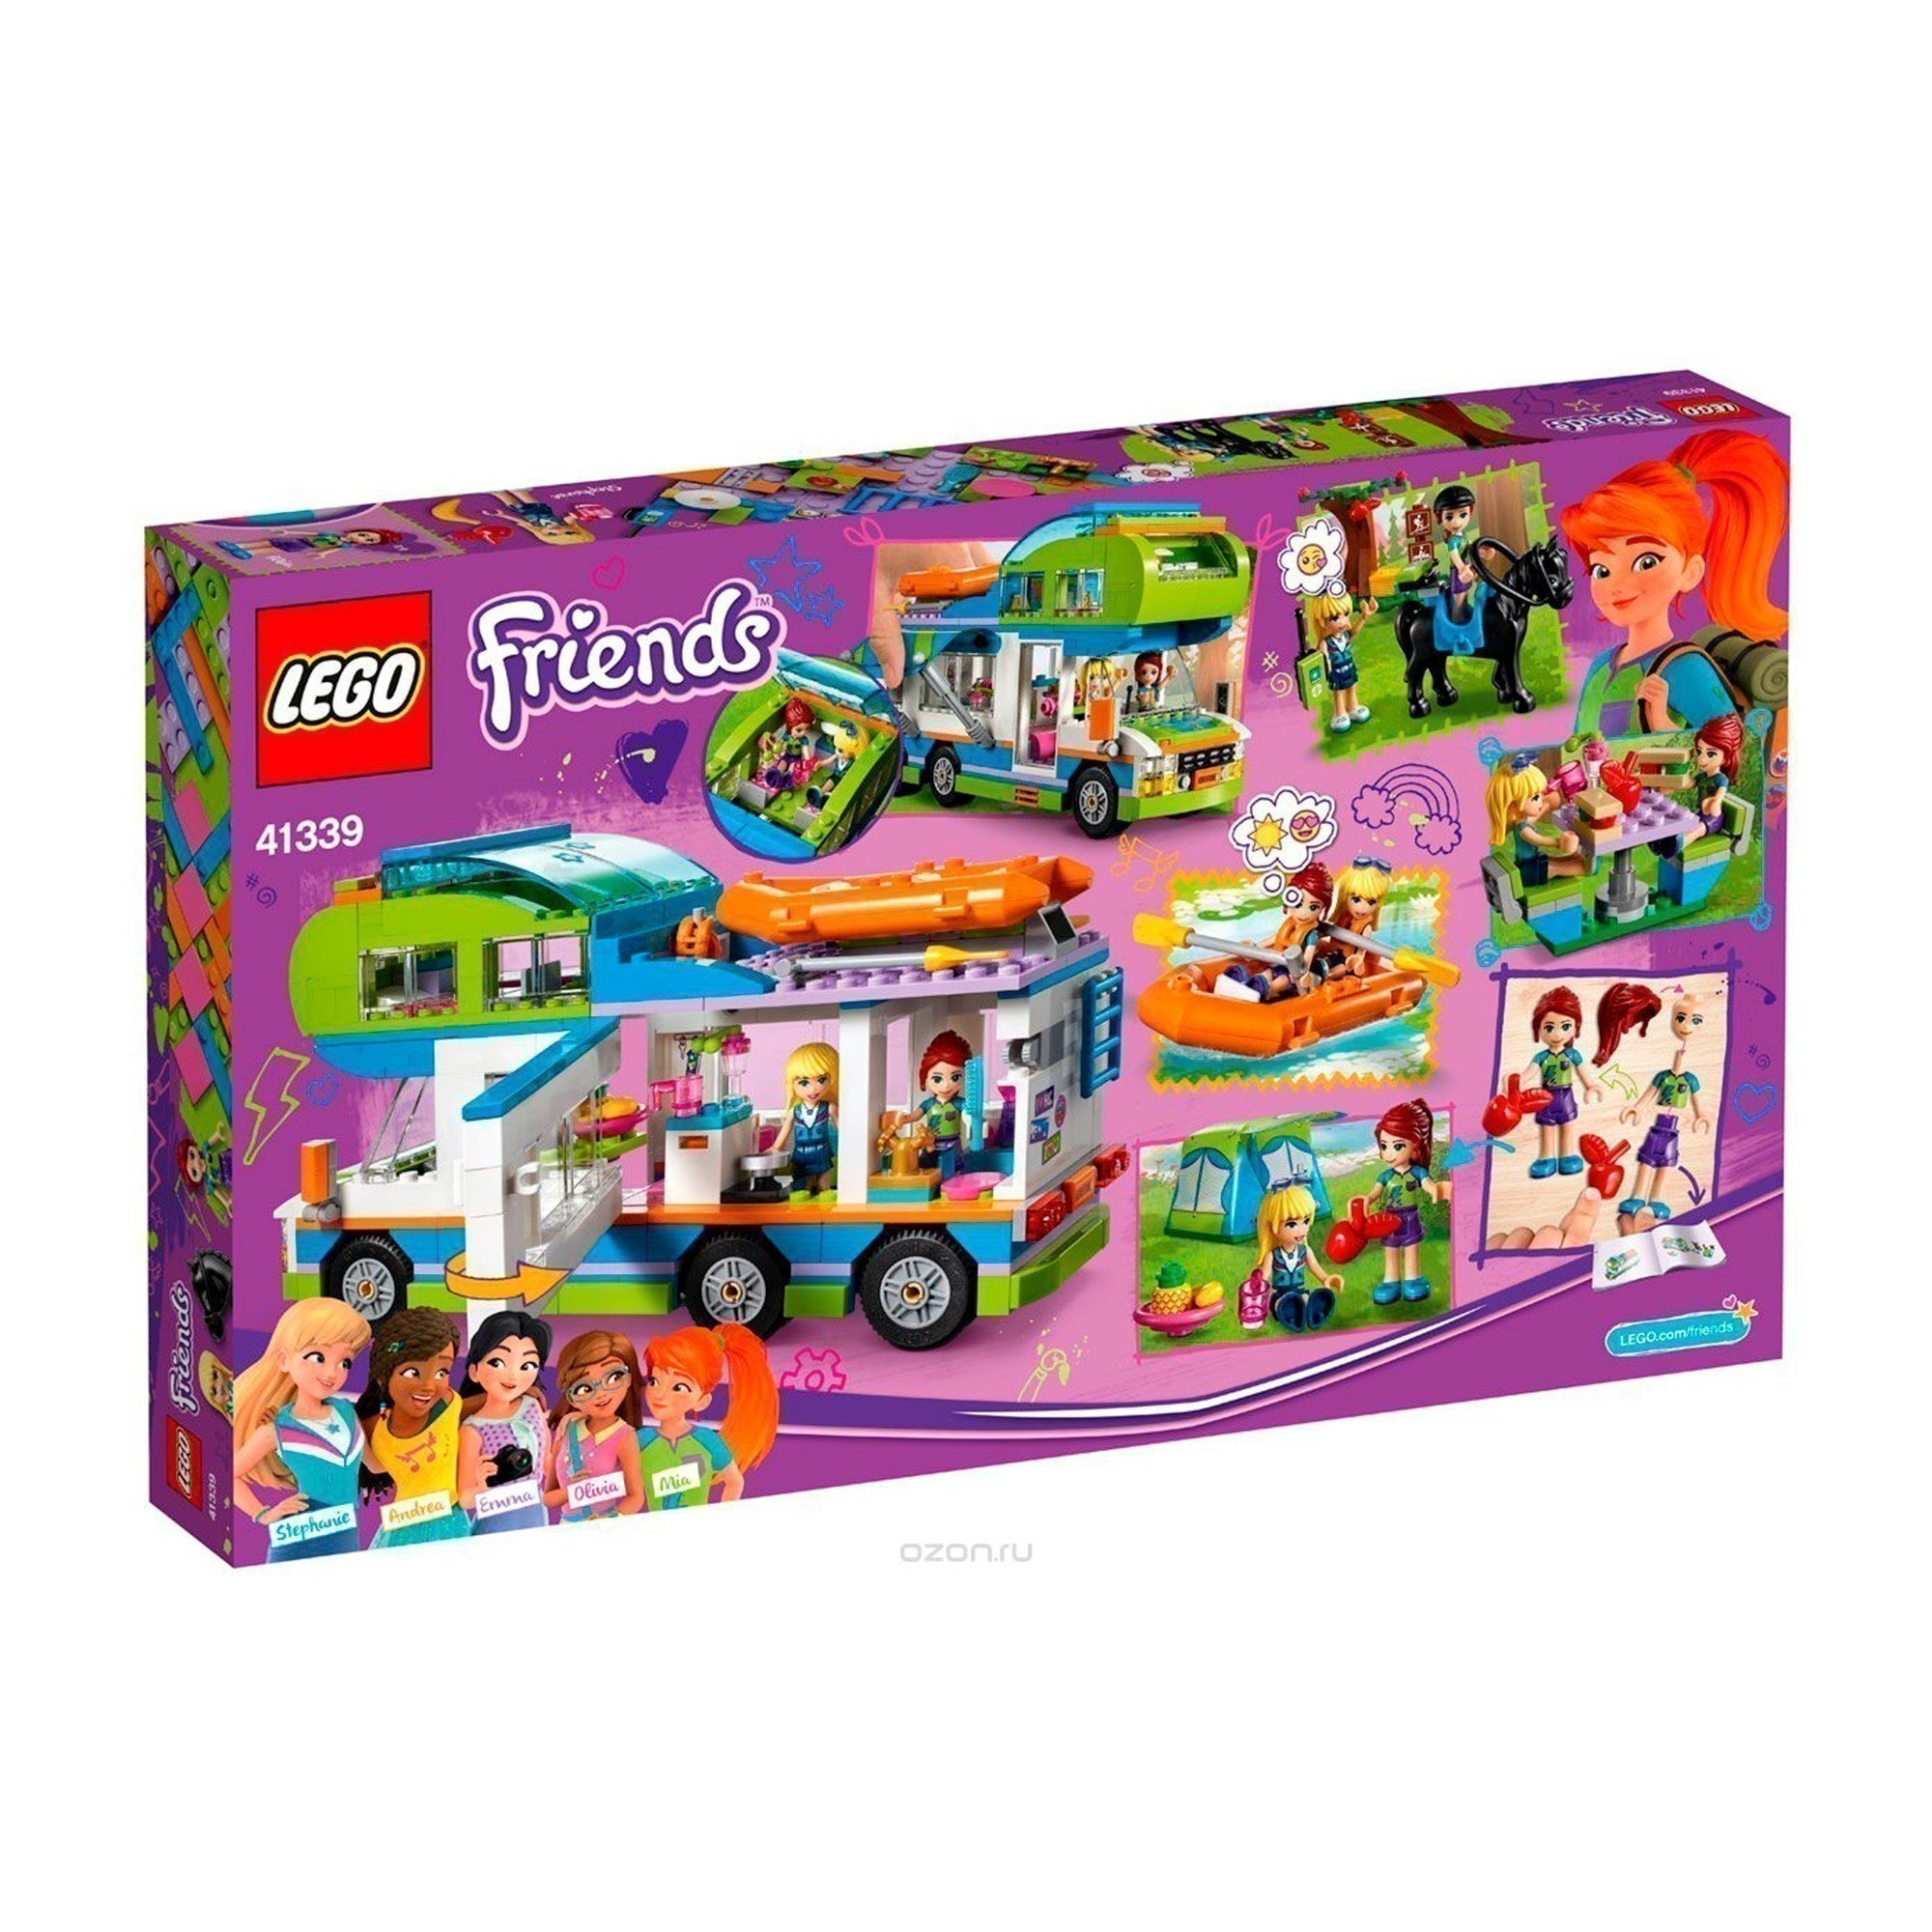 Конструктор LEGO Friends Дом на колсах 41339